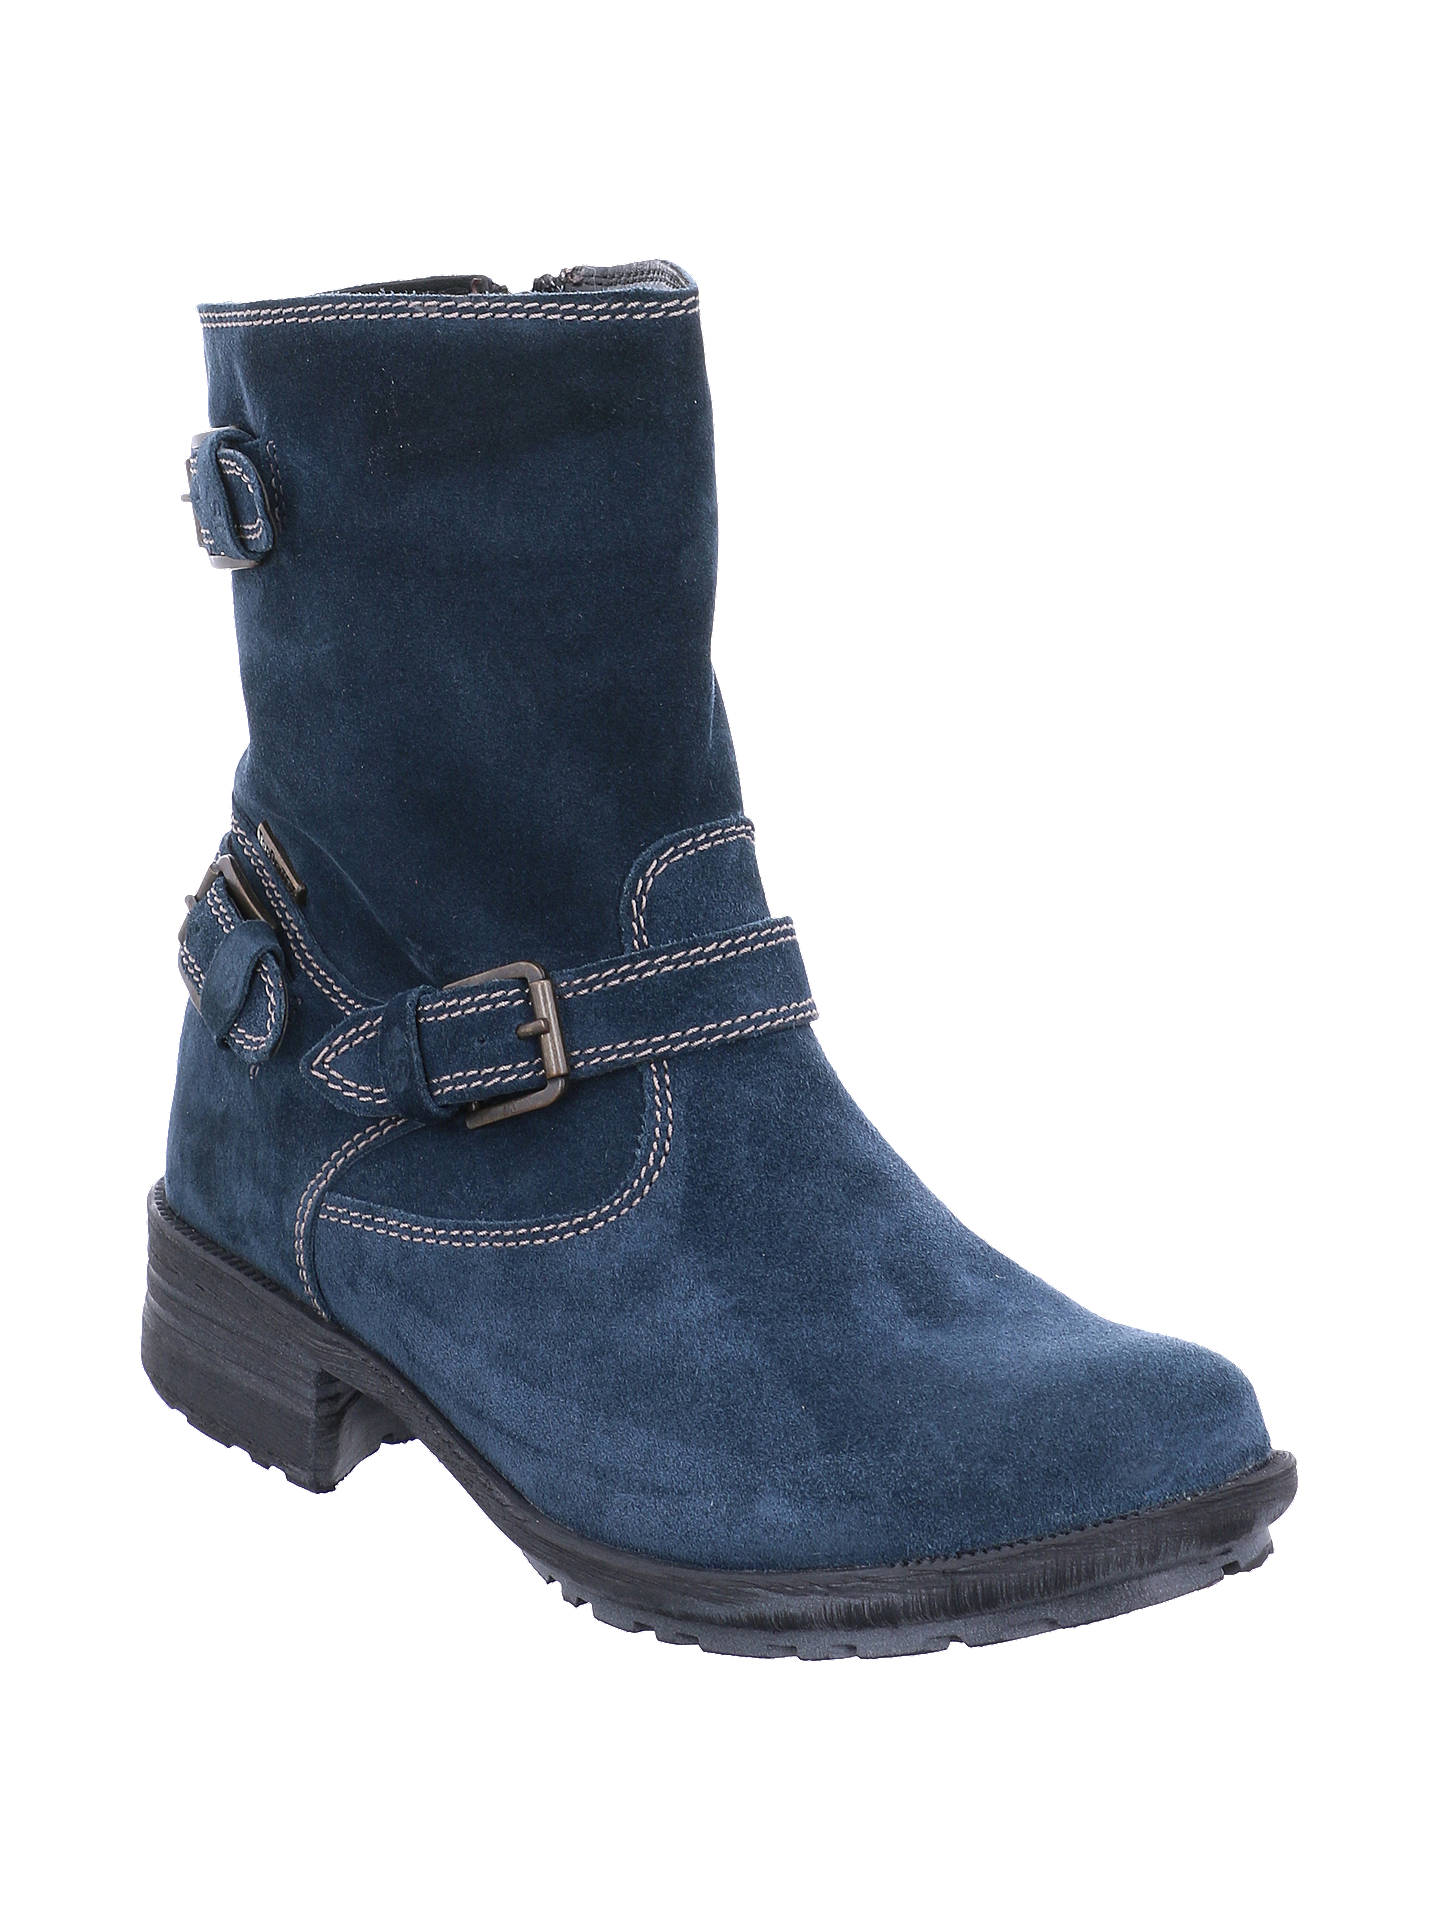 BuyJosef Seibel Sandra 30 Block Heeled Ankle Boots, Blue, 3 Online at johnlewis.com